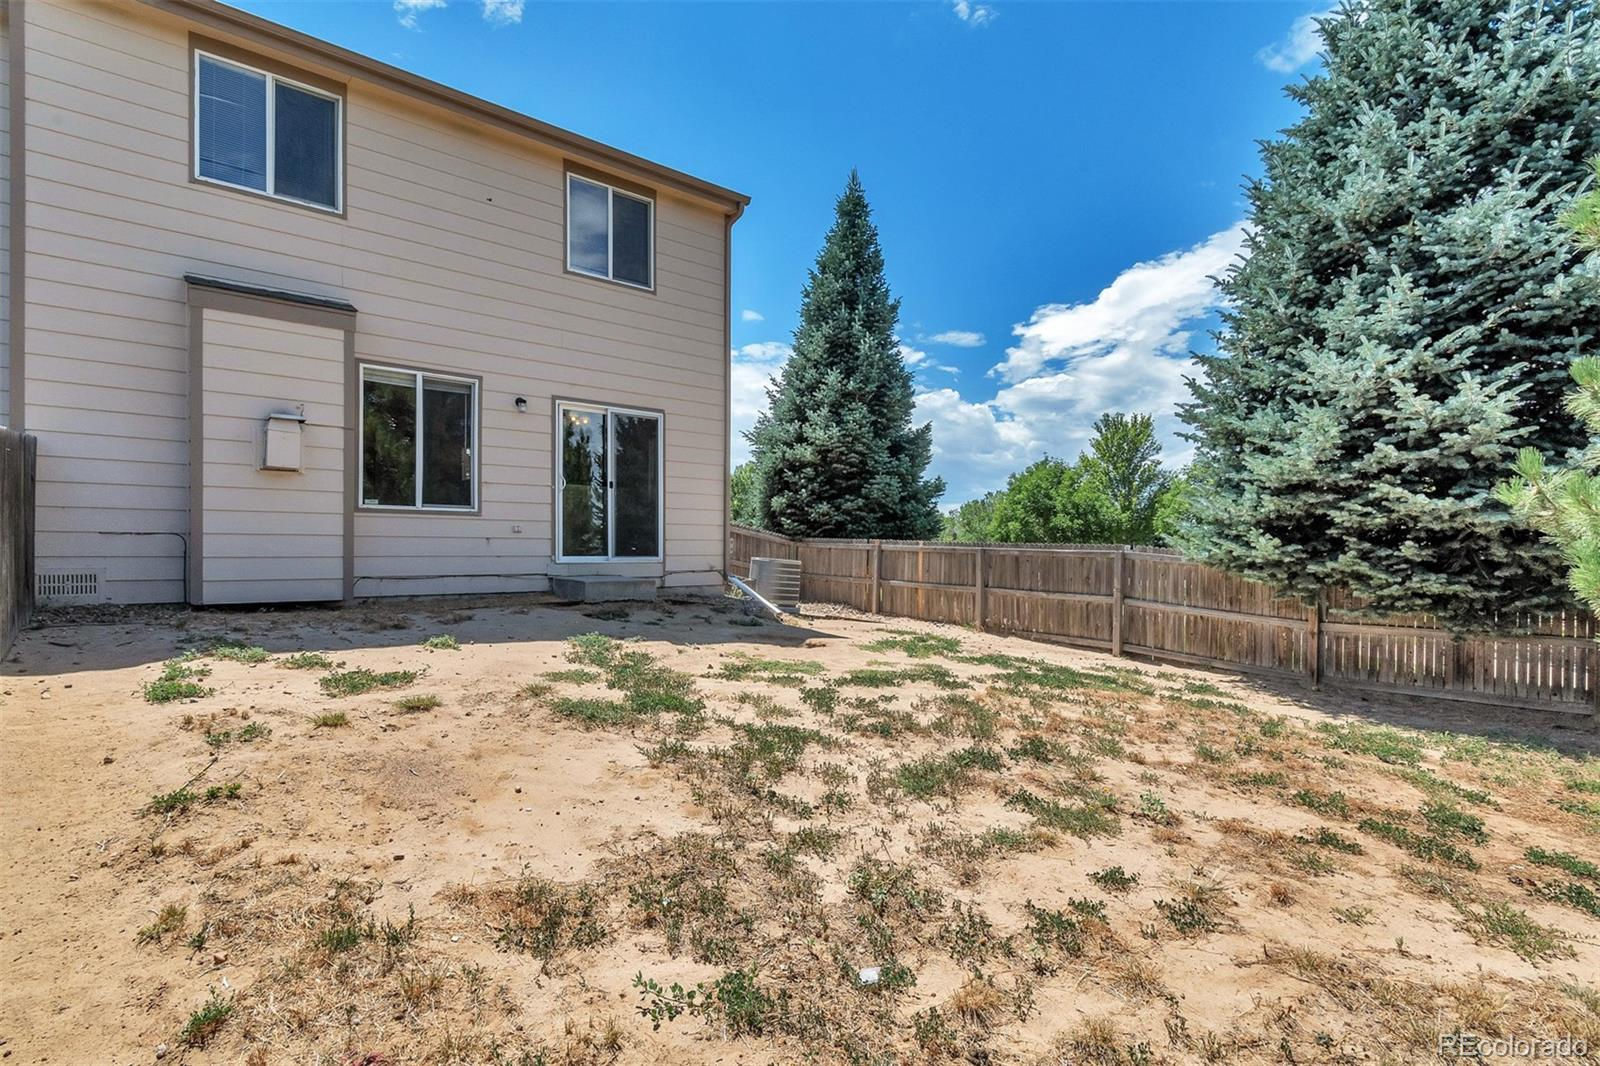 MLS# 3018948 - 23 - 14385 E 47th Drive, Denver, CO 80239